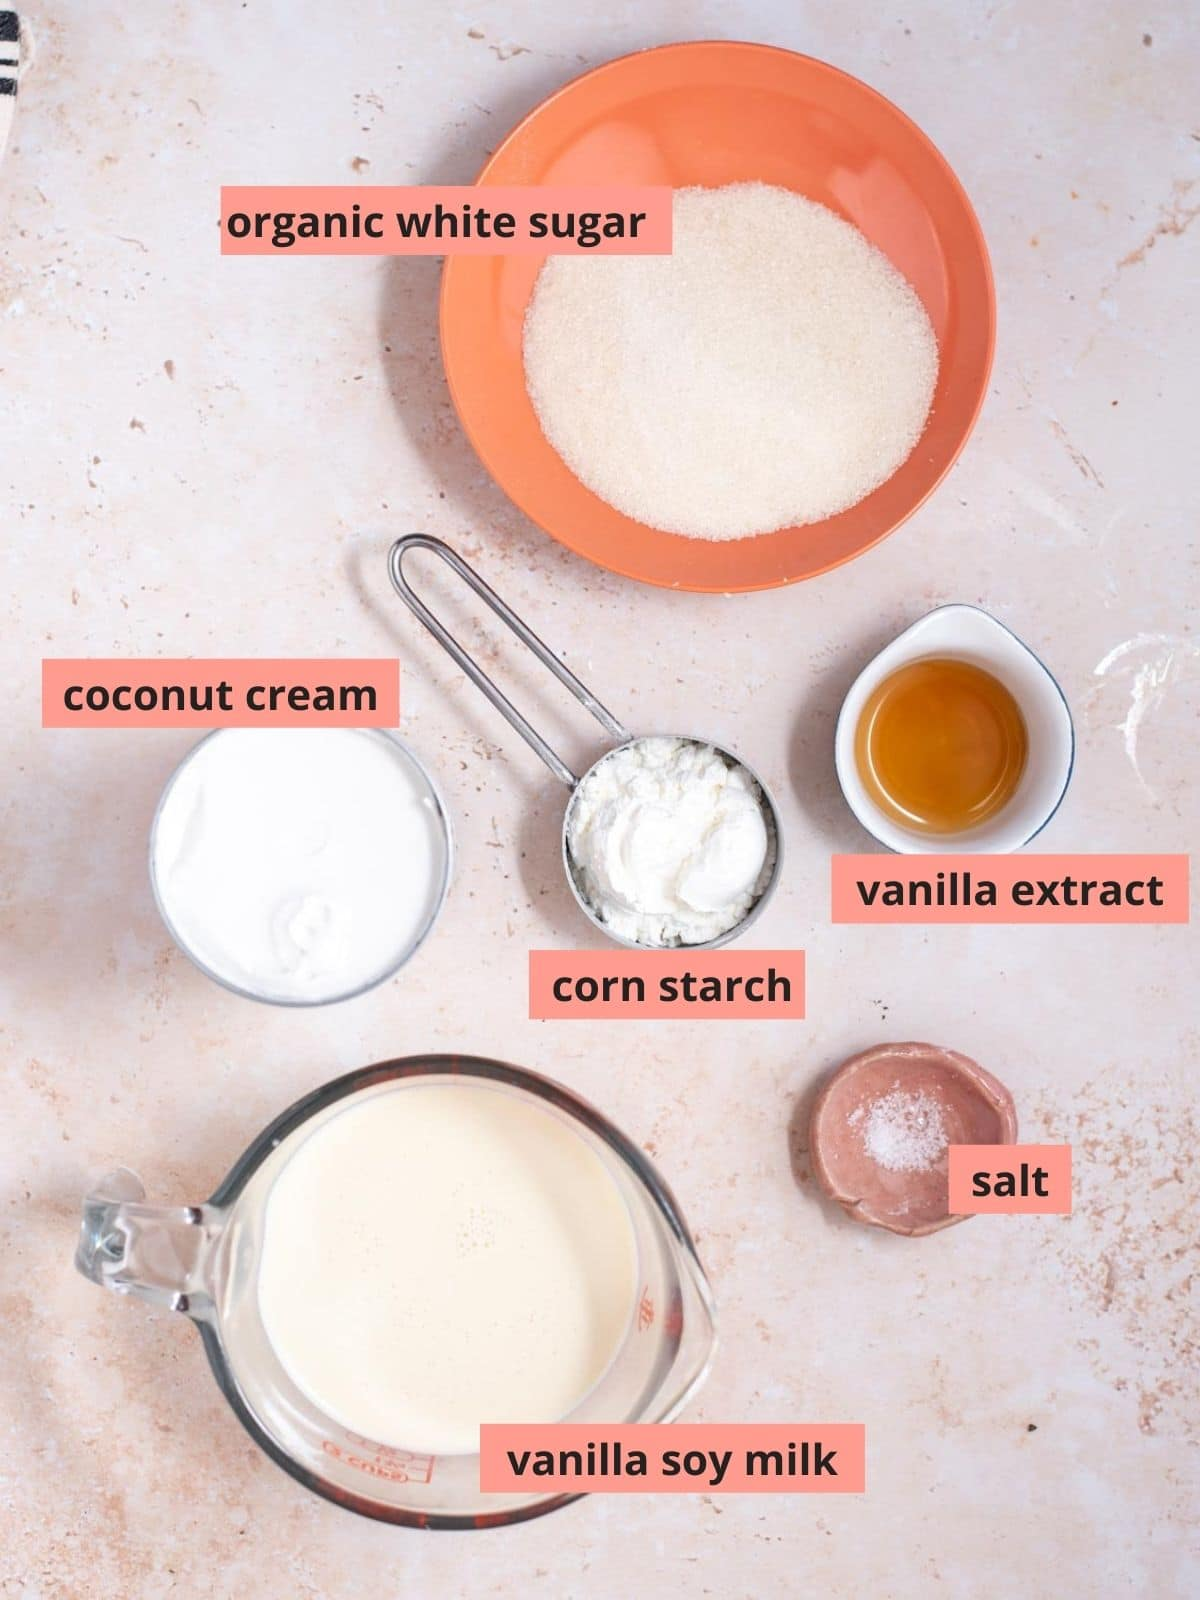 Labeled ingredients used to make banana pudding